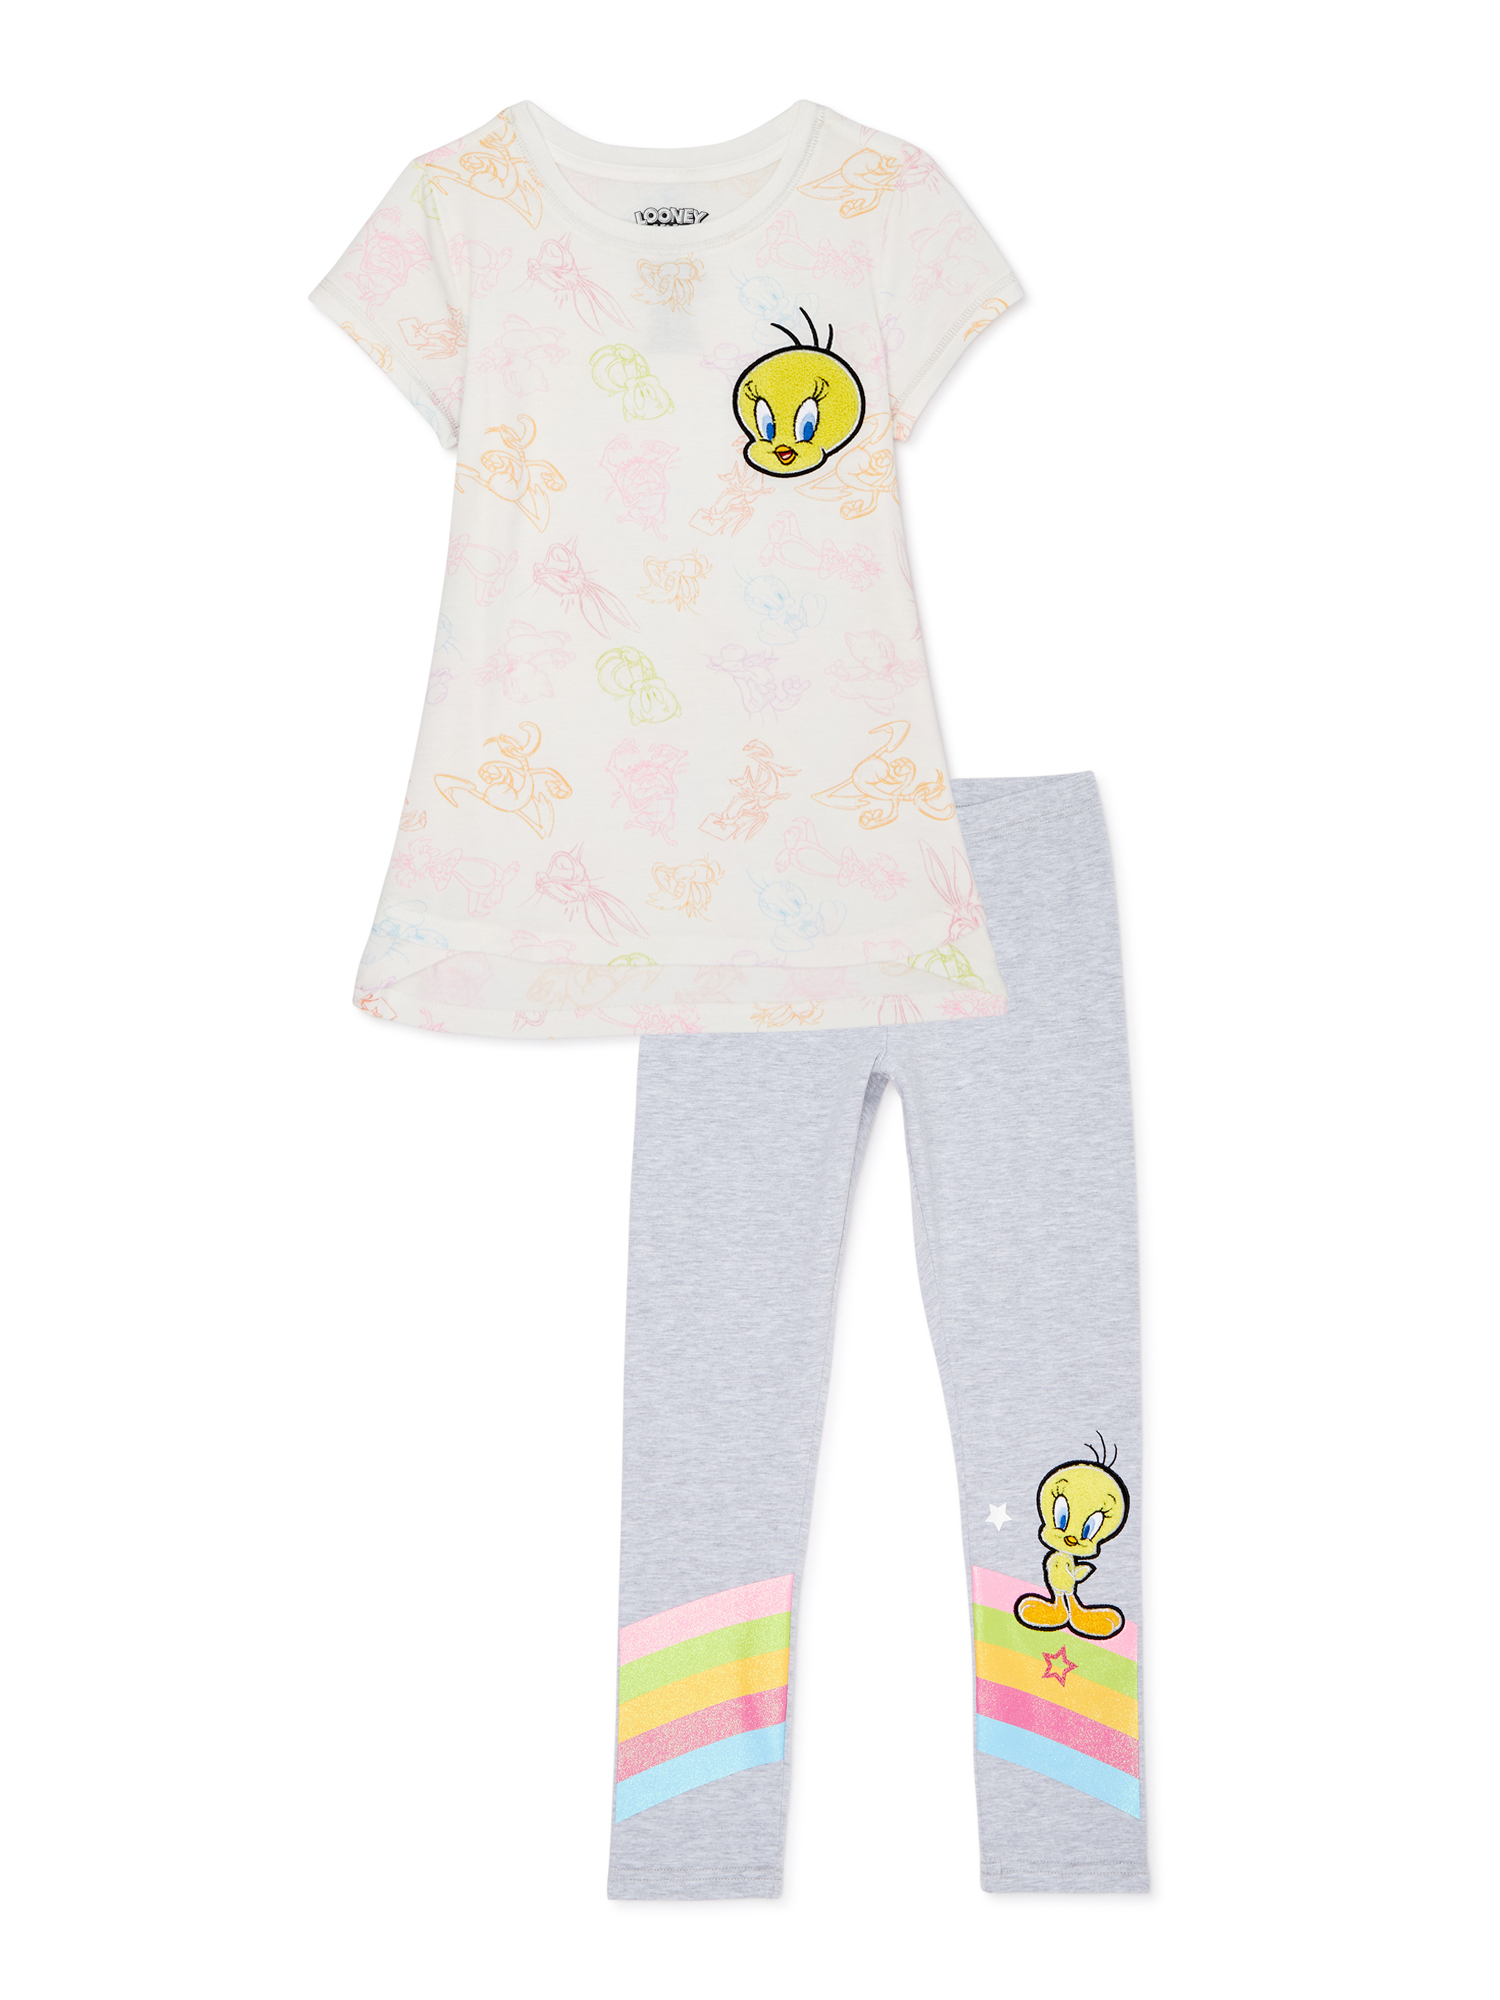 Multi Real Love Little Girls Believe in Your Dreams 2-Piece Tee /& Shorts Set 4